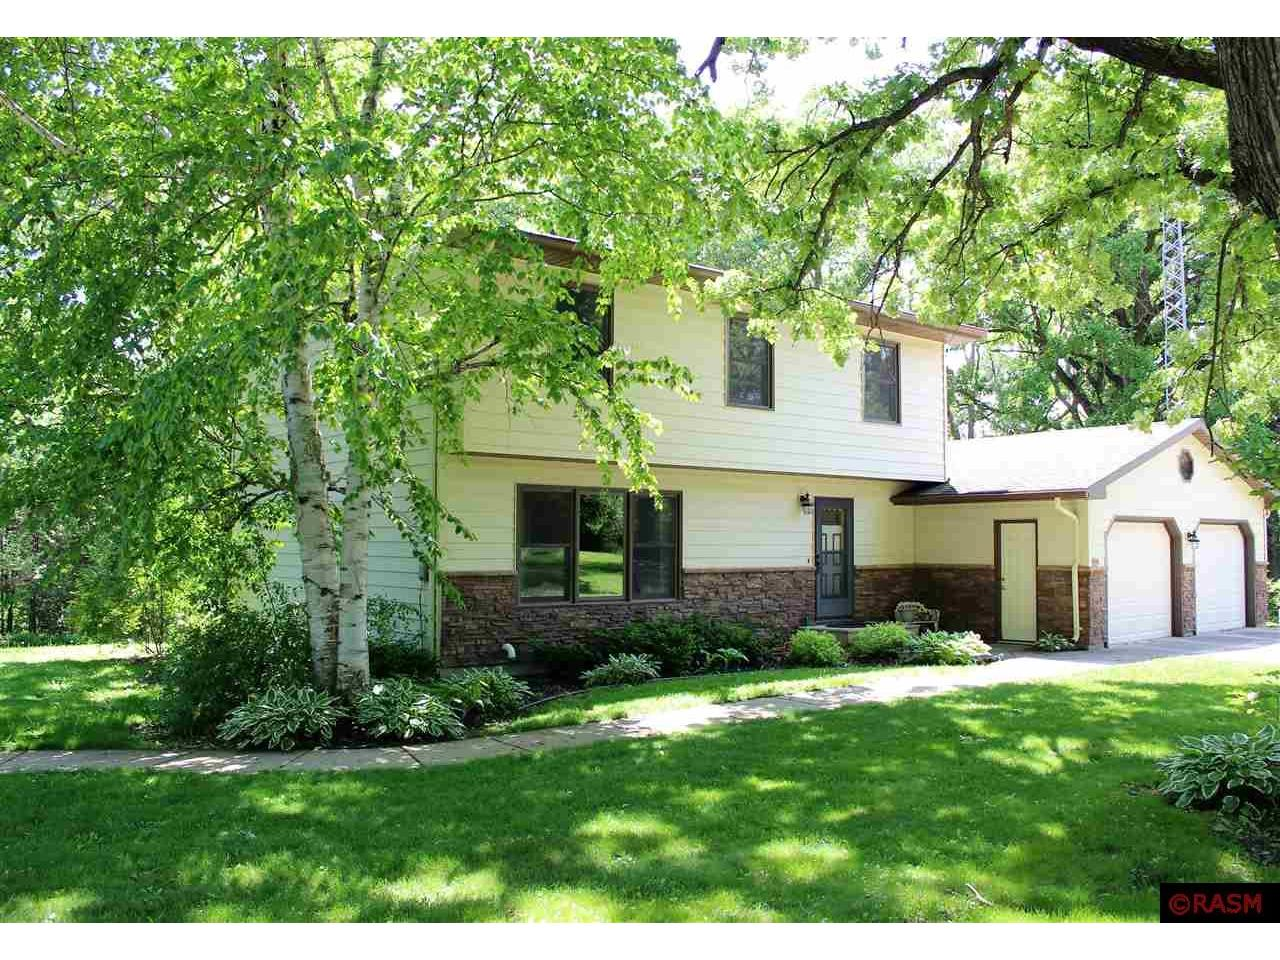 22726 185th Ave New Ulm Mn 56073